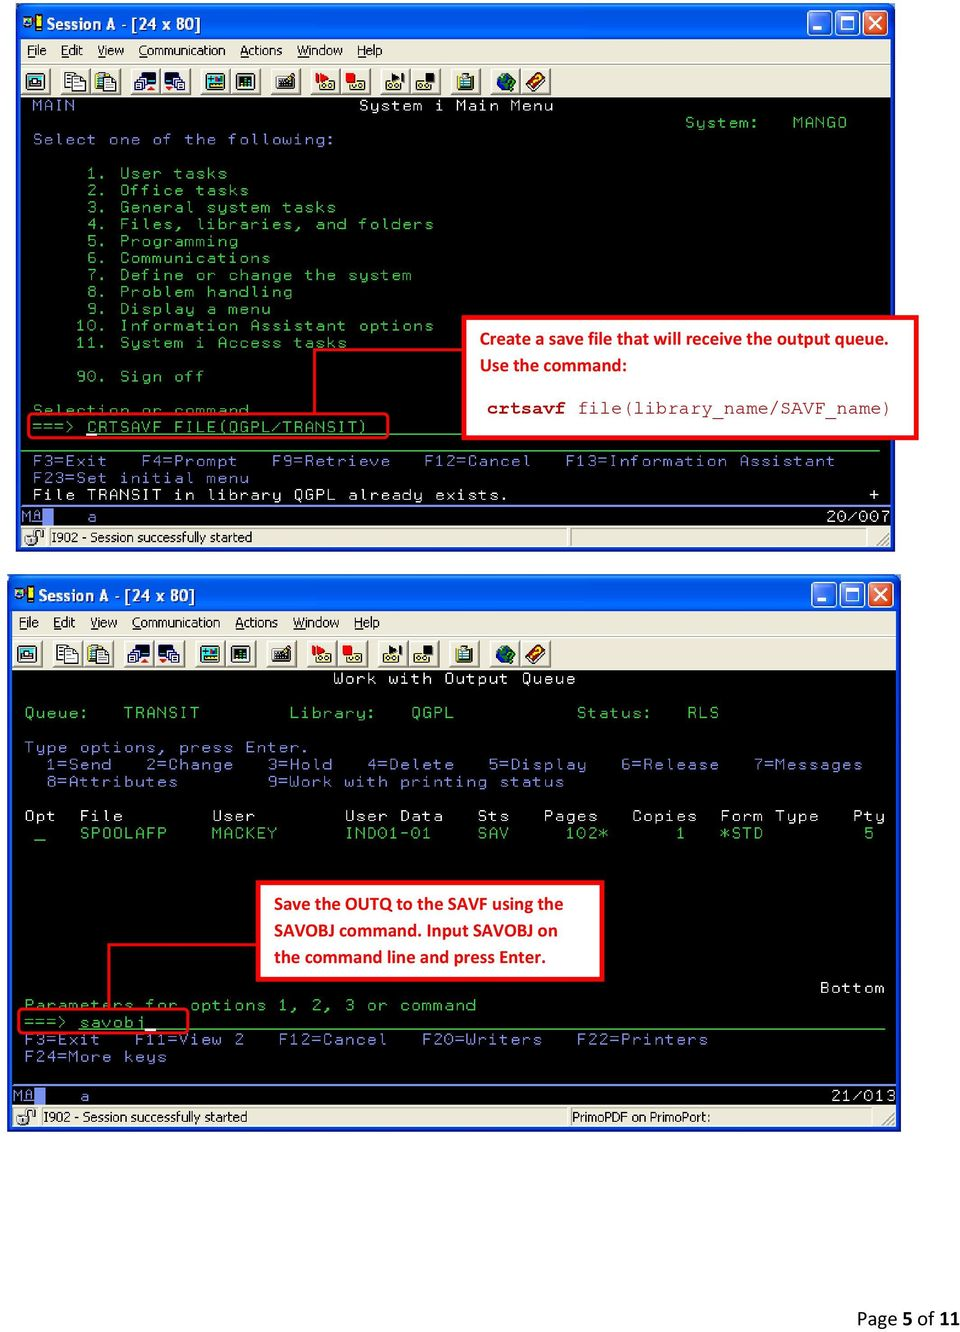 How to export a spool file from an AS/400 and export to a Windows PC